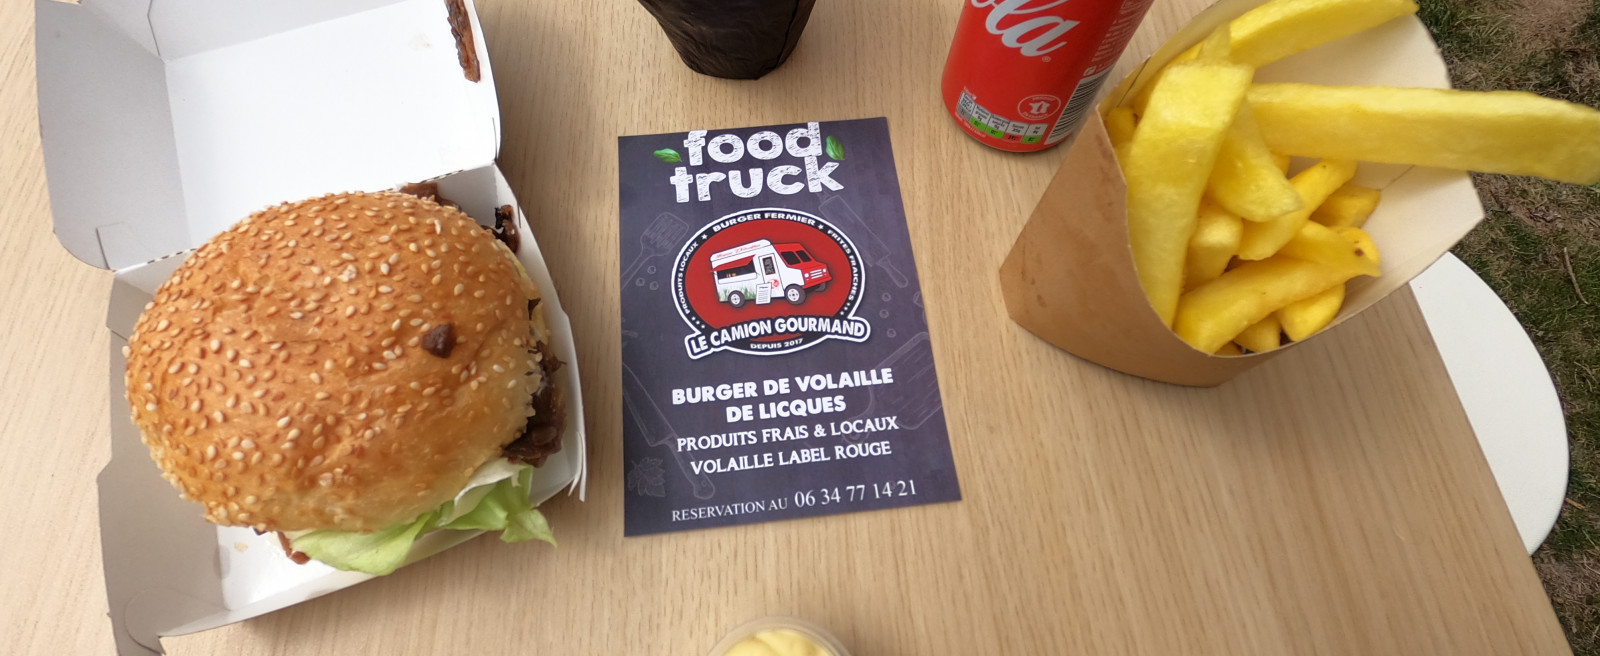 Le Camion Gourmand - Food truck